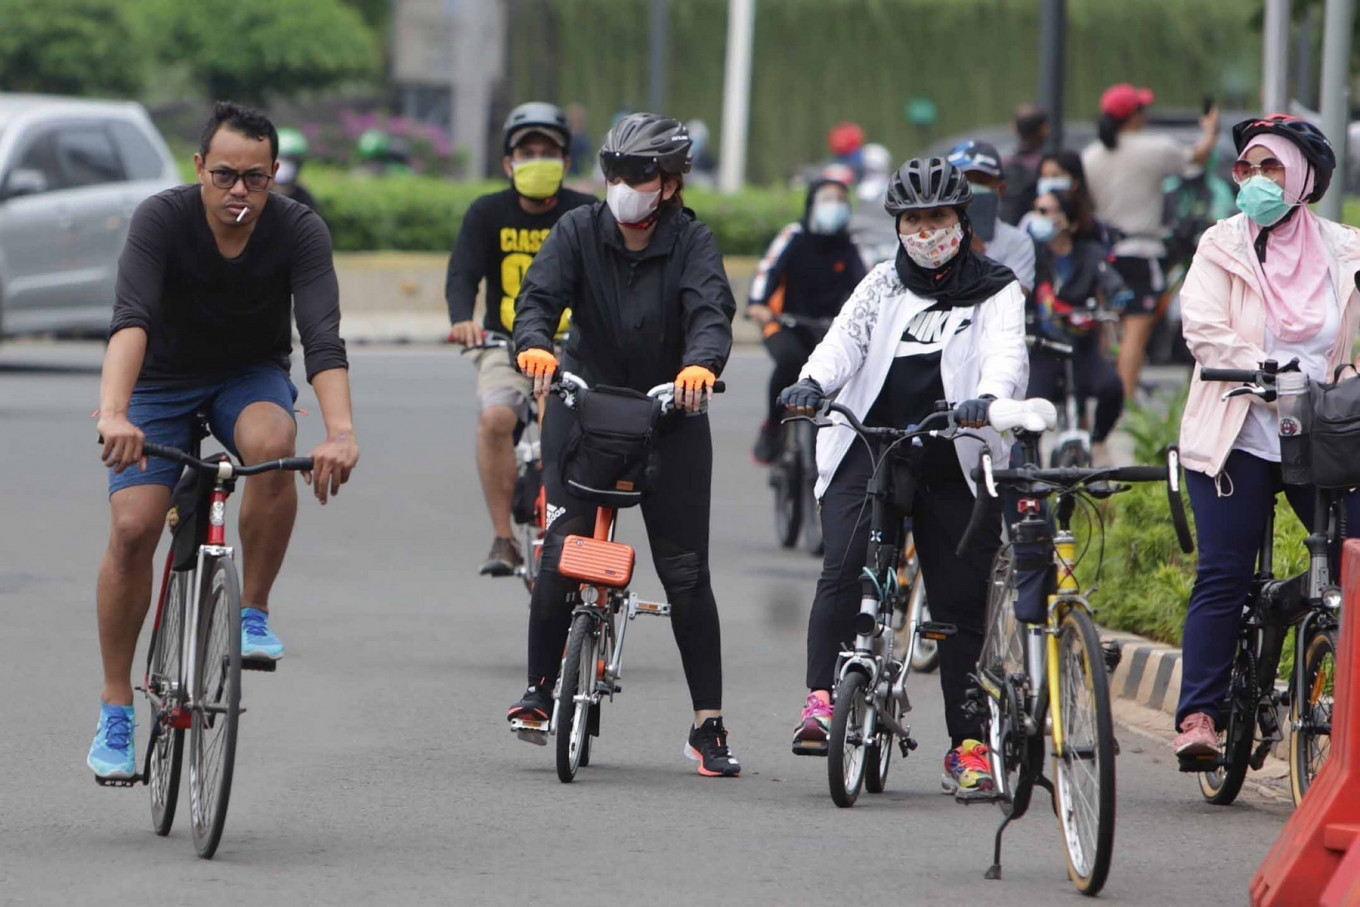 Cyclists ride on the Hotel Indonesia traffic circle in Central Jakarta, on Sunday, September 20. 2020. The first week of reimposed large-scale social restrictions saw a significant drop in the number of cyclists on the corridor along Jl. Sudirman and Jl. MT Haryono. JP/Wendra Ajistyatama